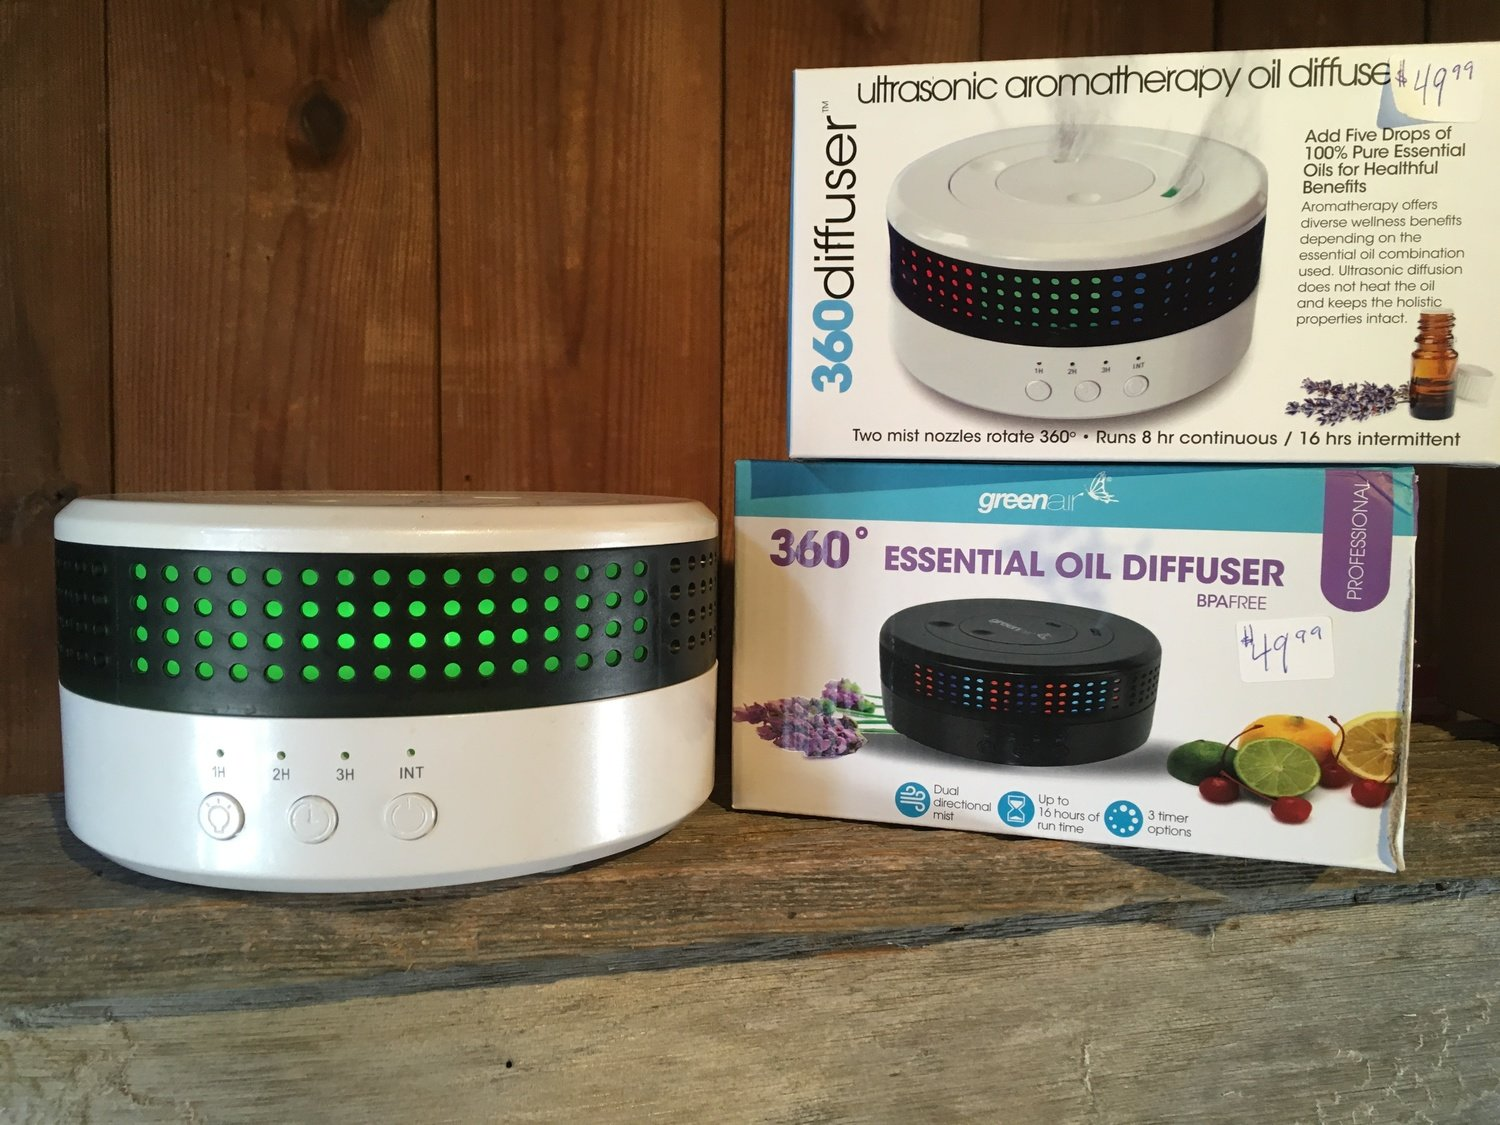 360 Essential Oil Diffuser